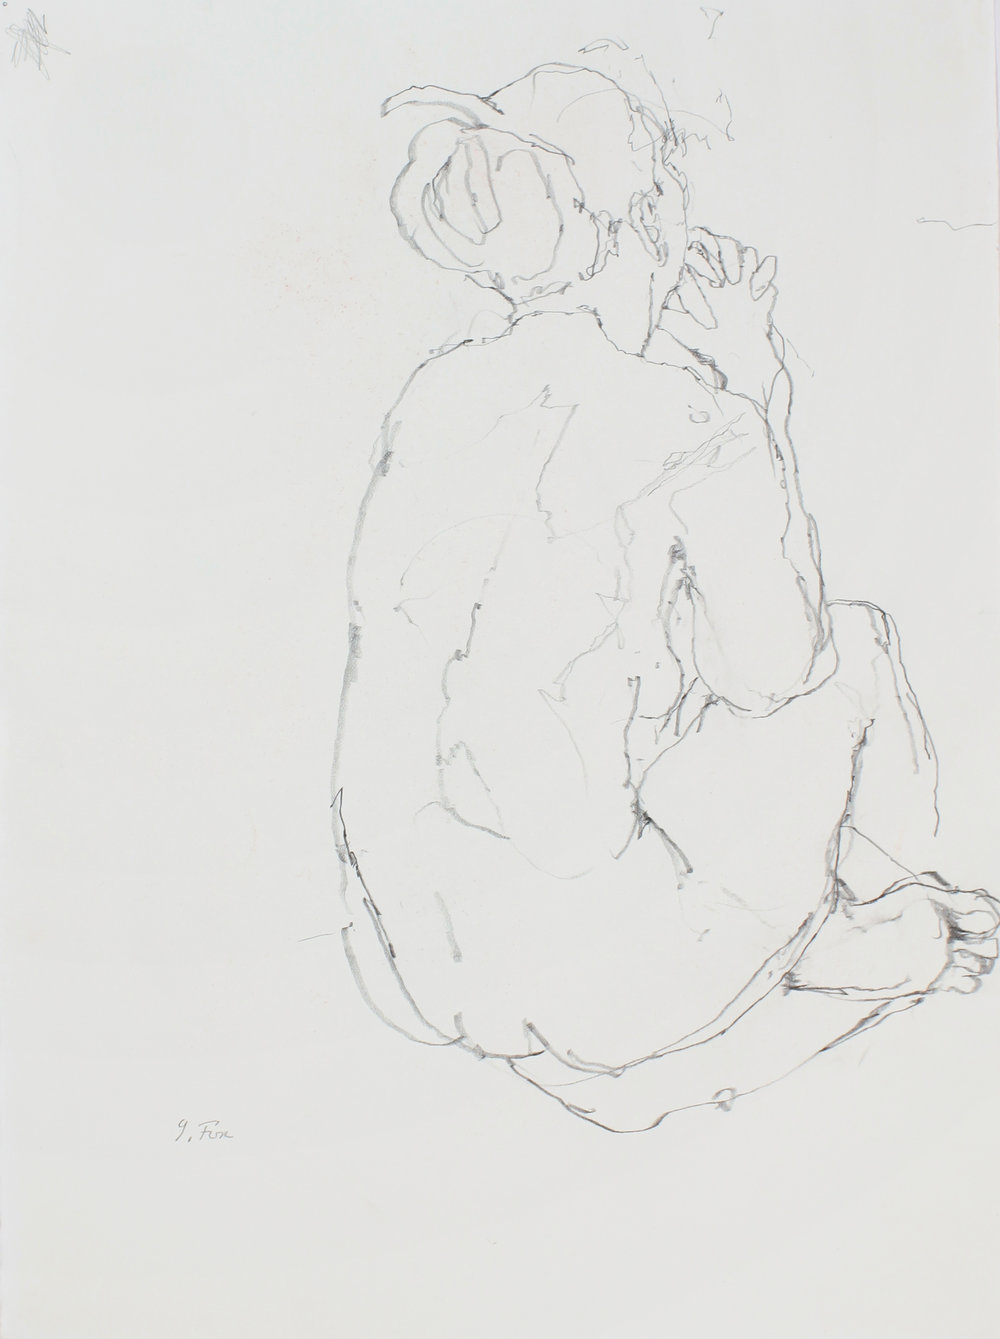 2000s_Seated_Nude_from_Back_with_Clasped_Hands_pencil_on_paper_15x11in_WPF500.jpg